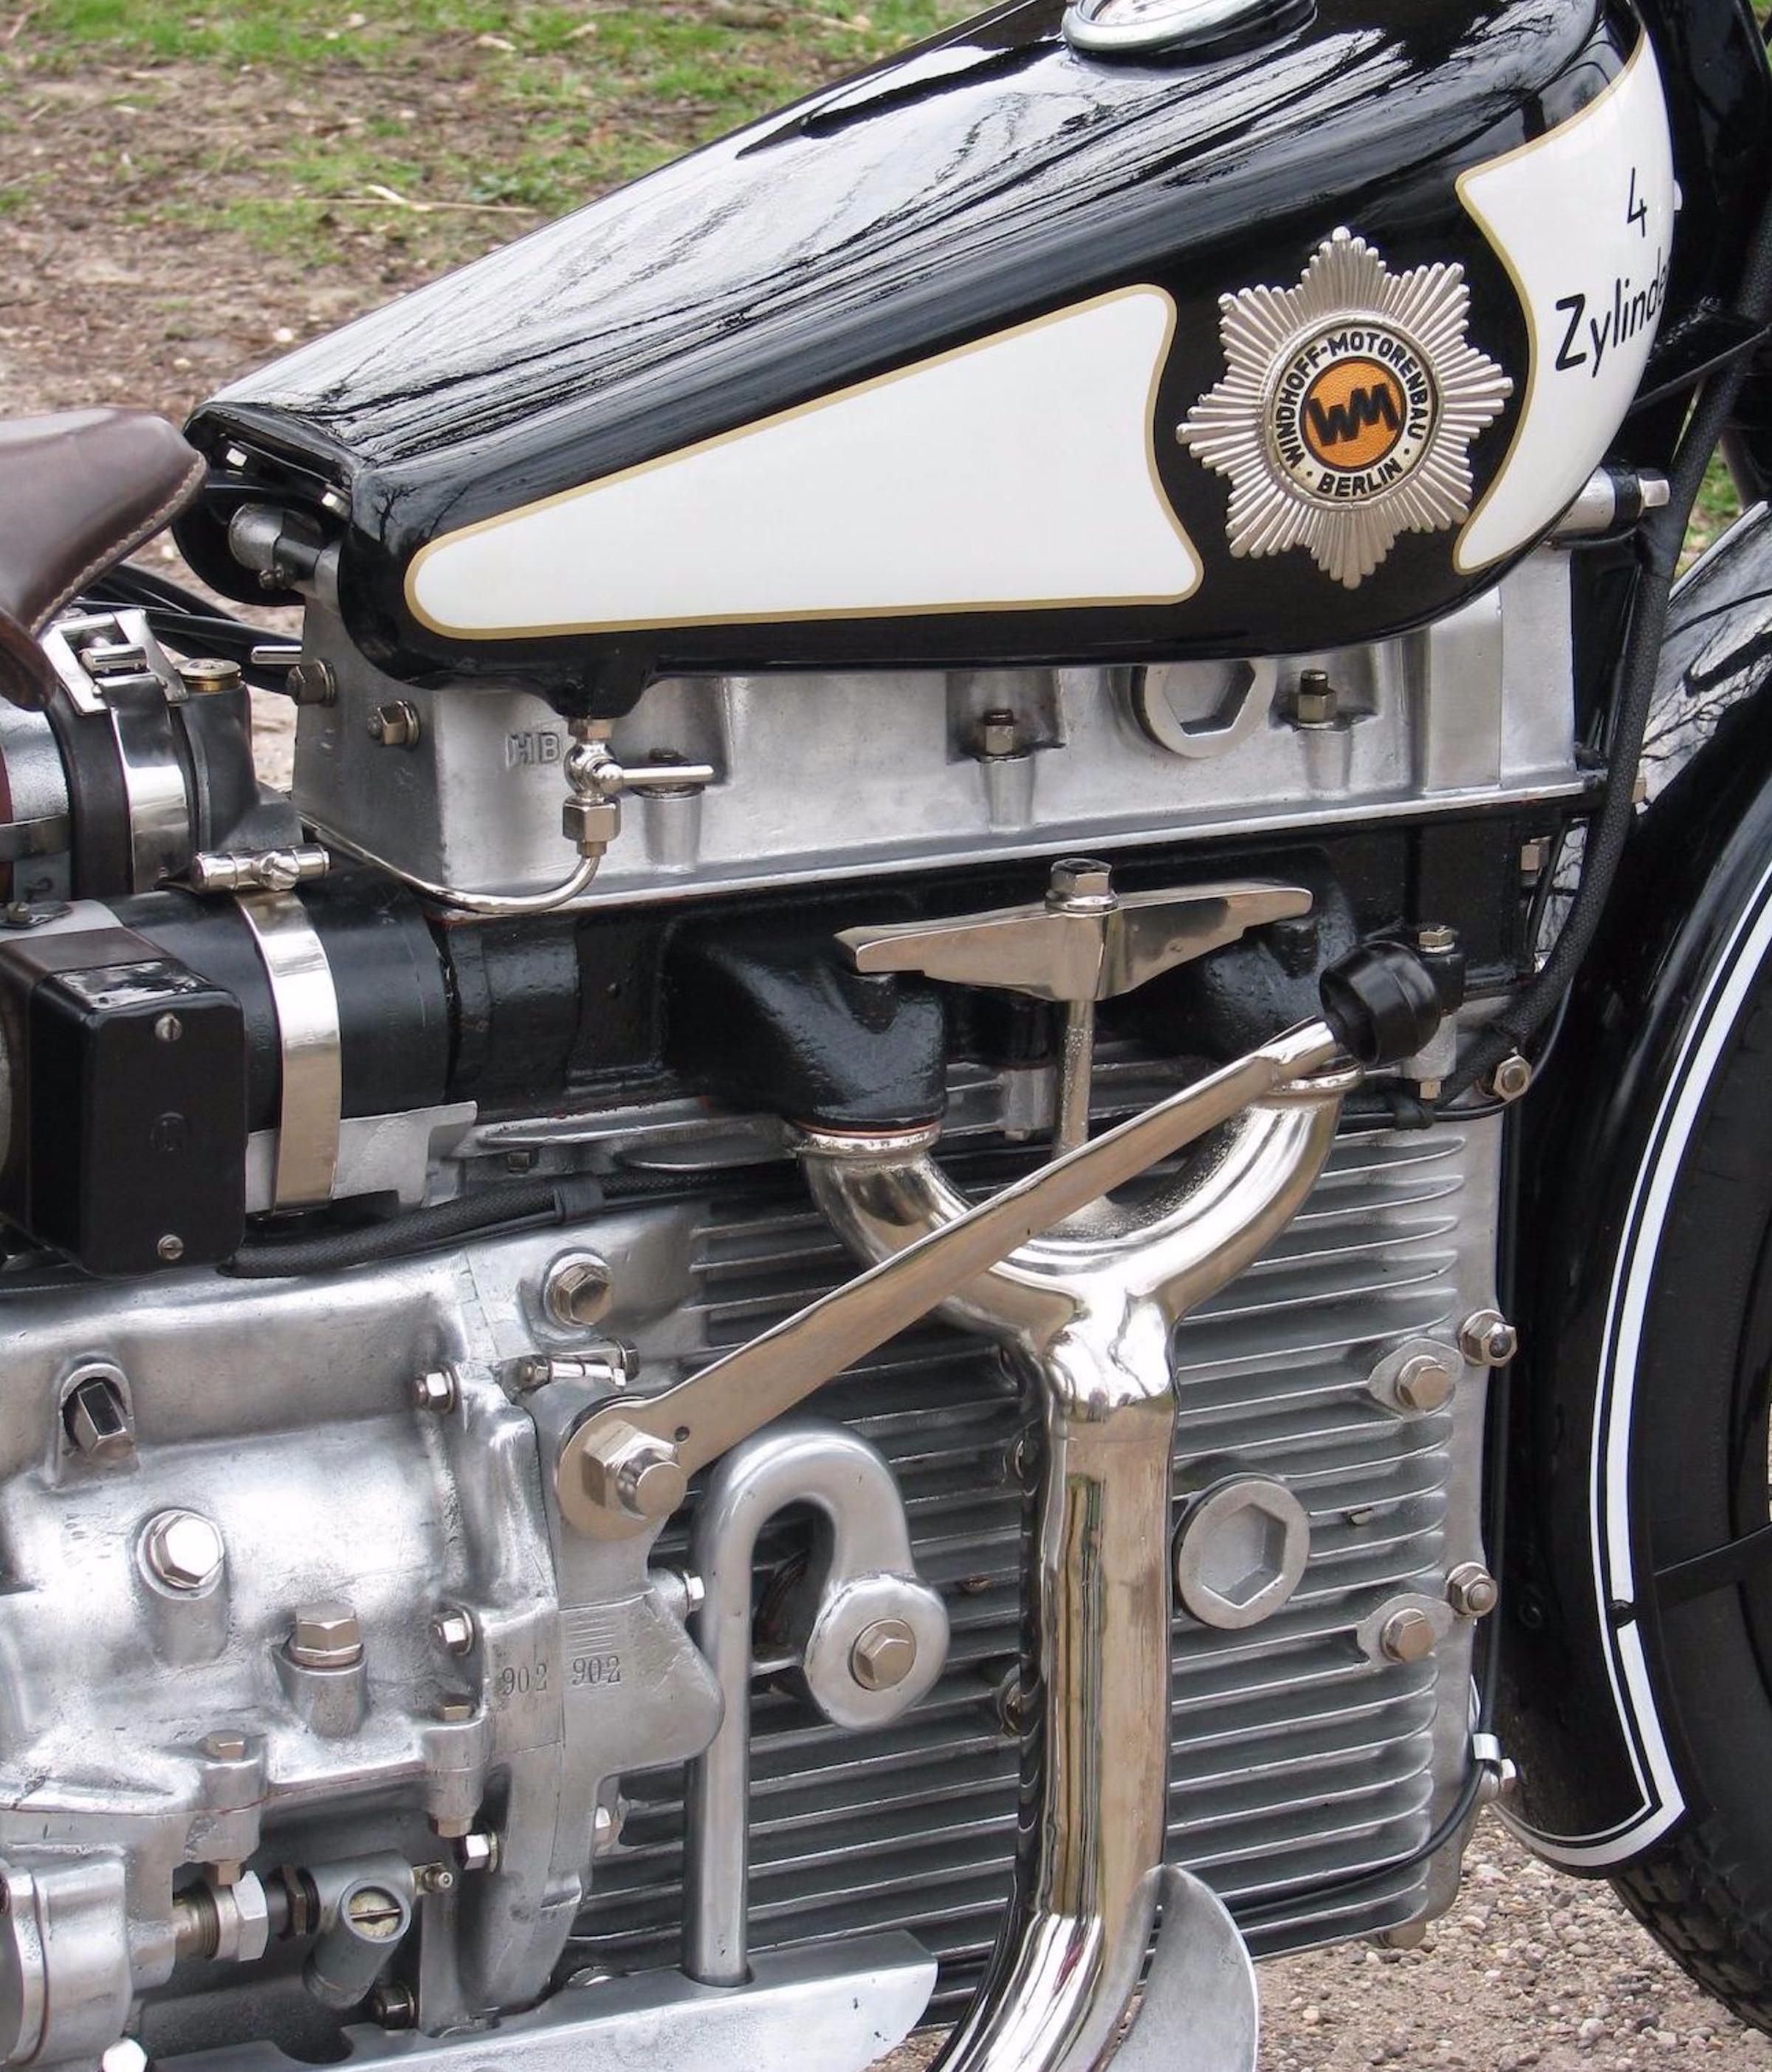 The Windhoff Four Cylinder Motorcycle Of Future From 1926 Engine 1